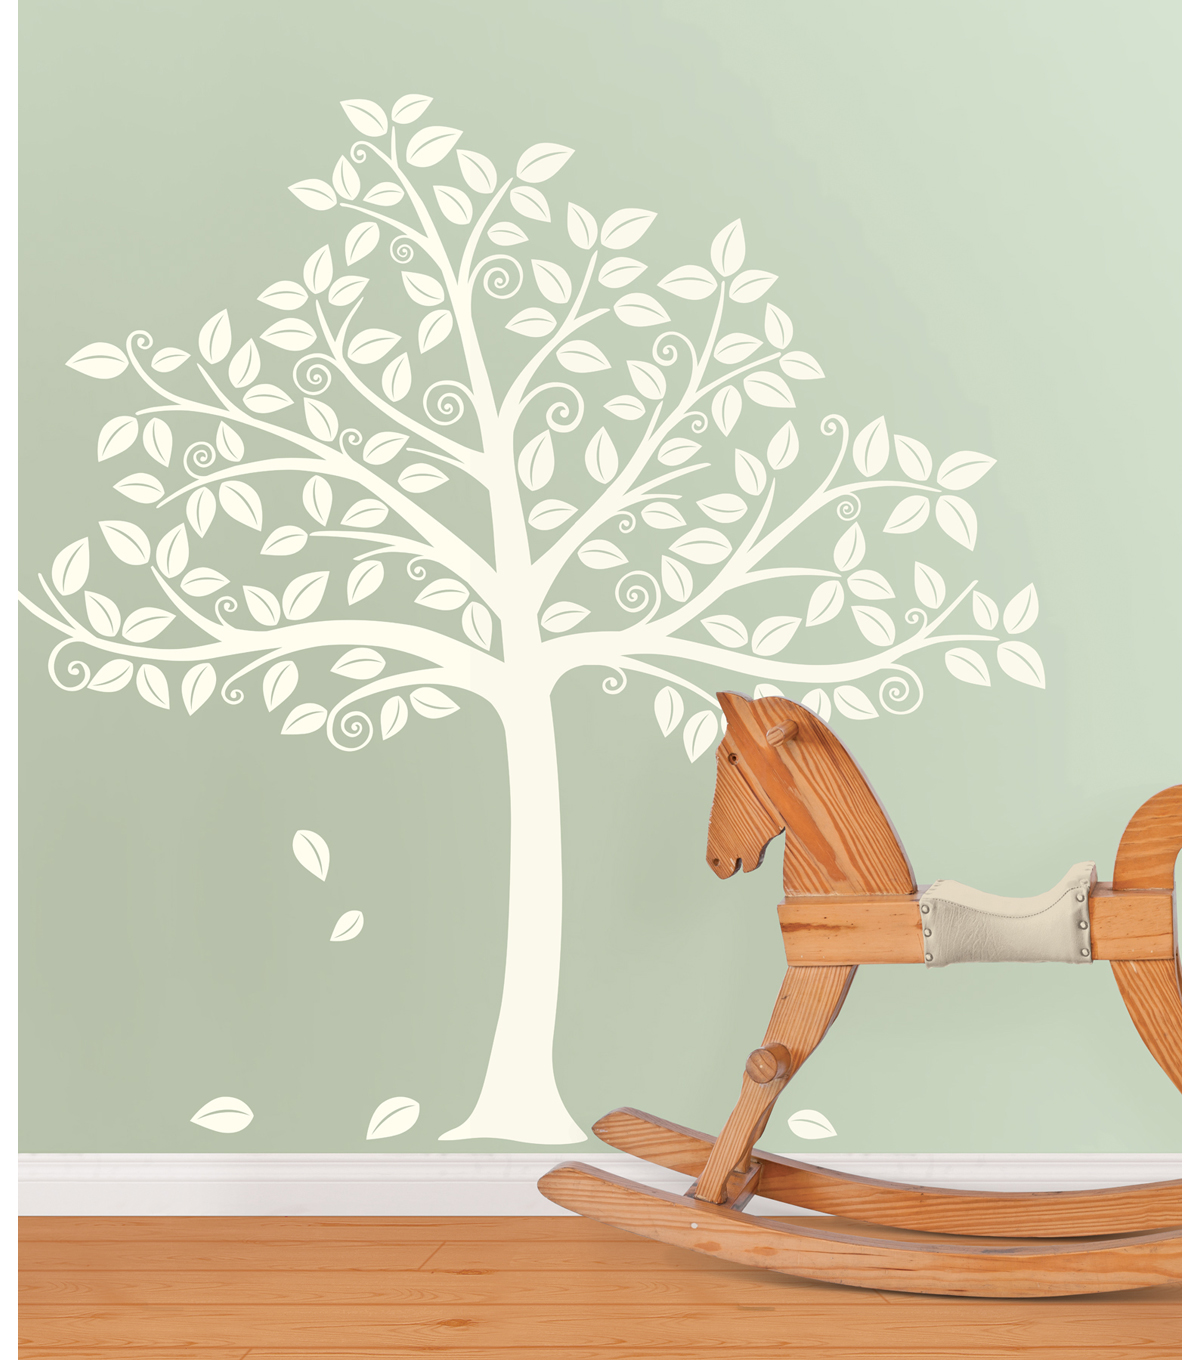 Wall Pops Silhouette Tree Wall Art Decal Kit, 129 Piece Set Part 51